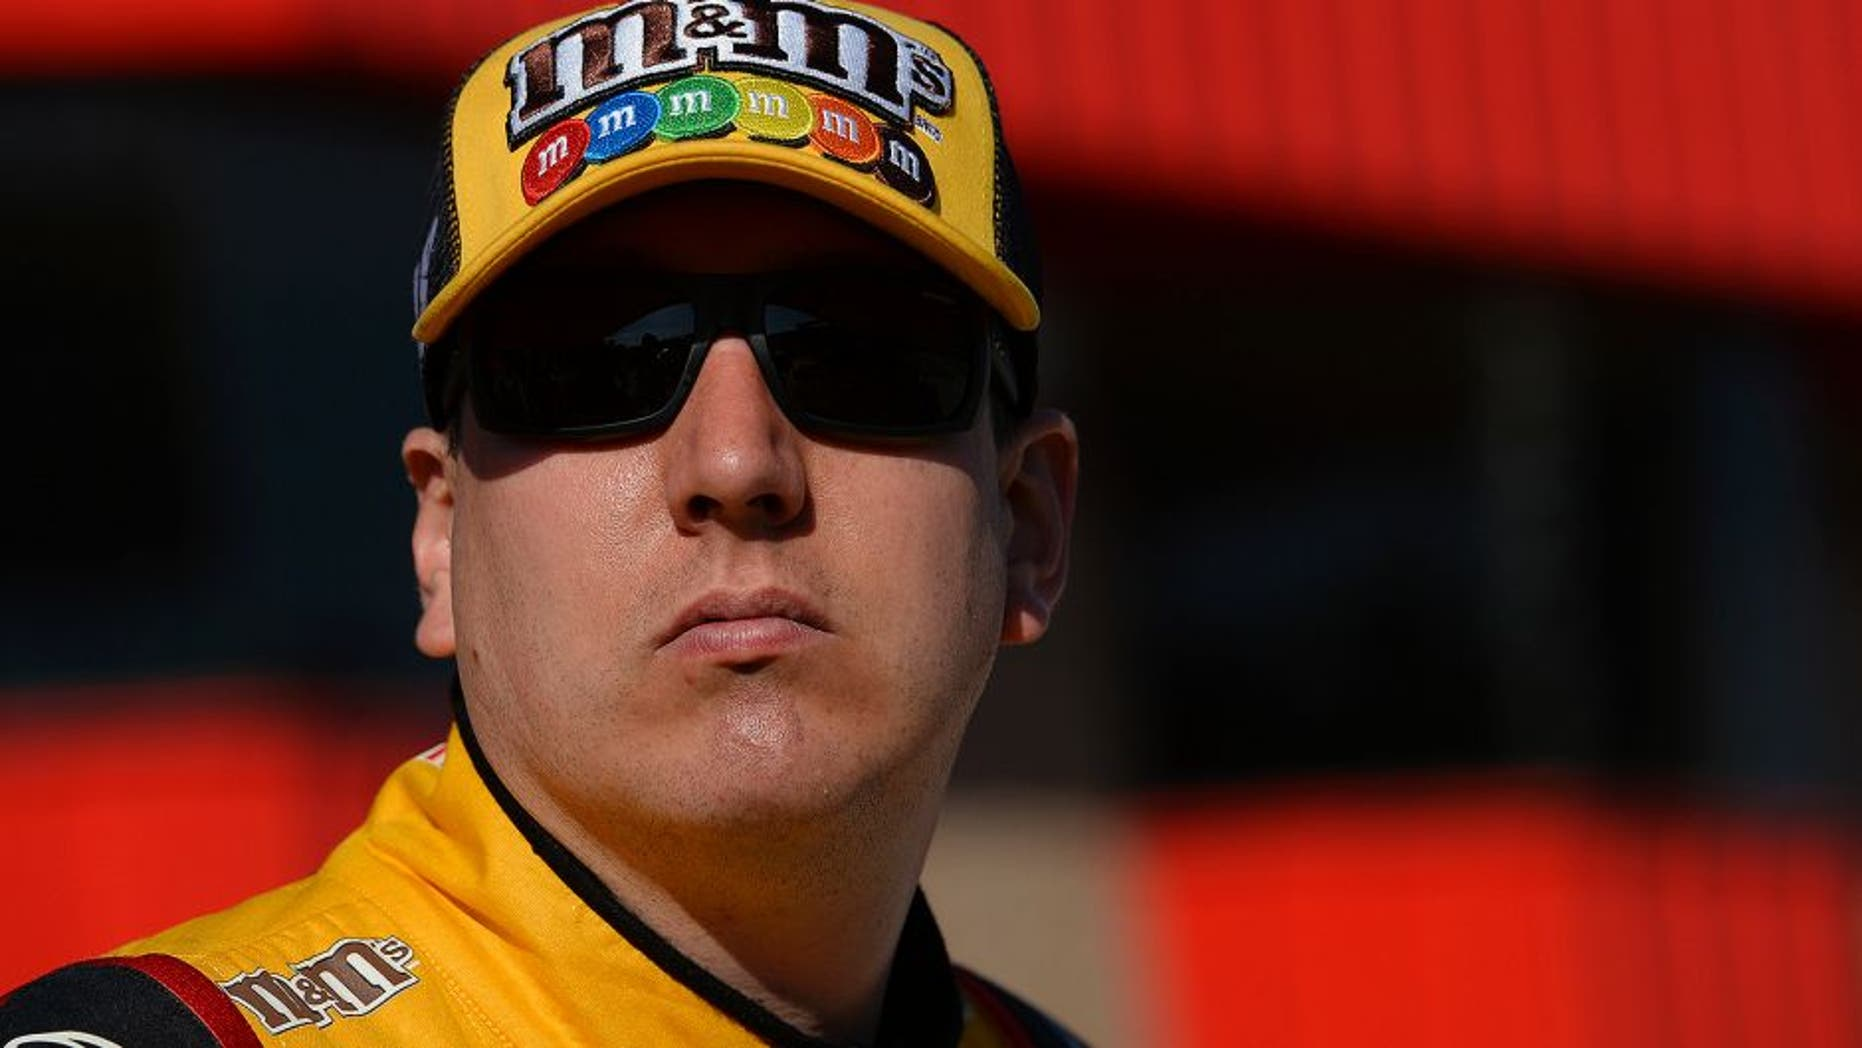 FONTANA, CA - MARCH 18: Kyle Busch, driver of the #18 M&M's 75 Toyota, stands on the grid during qualifying for the NASCAR Sprint Cup Series Auto Club 400 at Auto Club Speedway on March 18, 2016 in Fontana, California. (Photo by Robert Laberge/Getty Images)